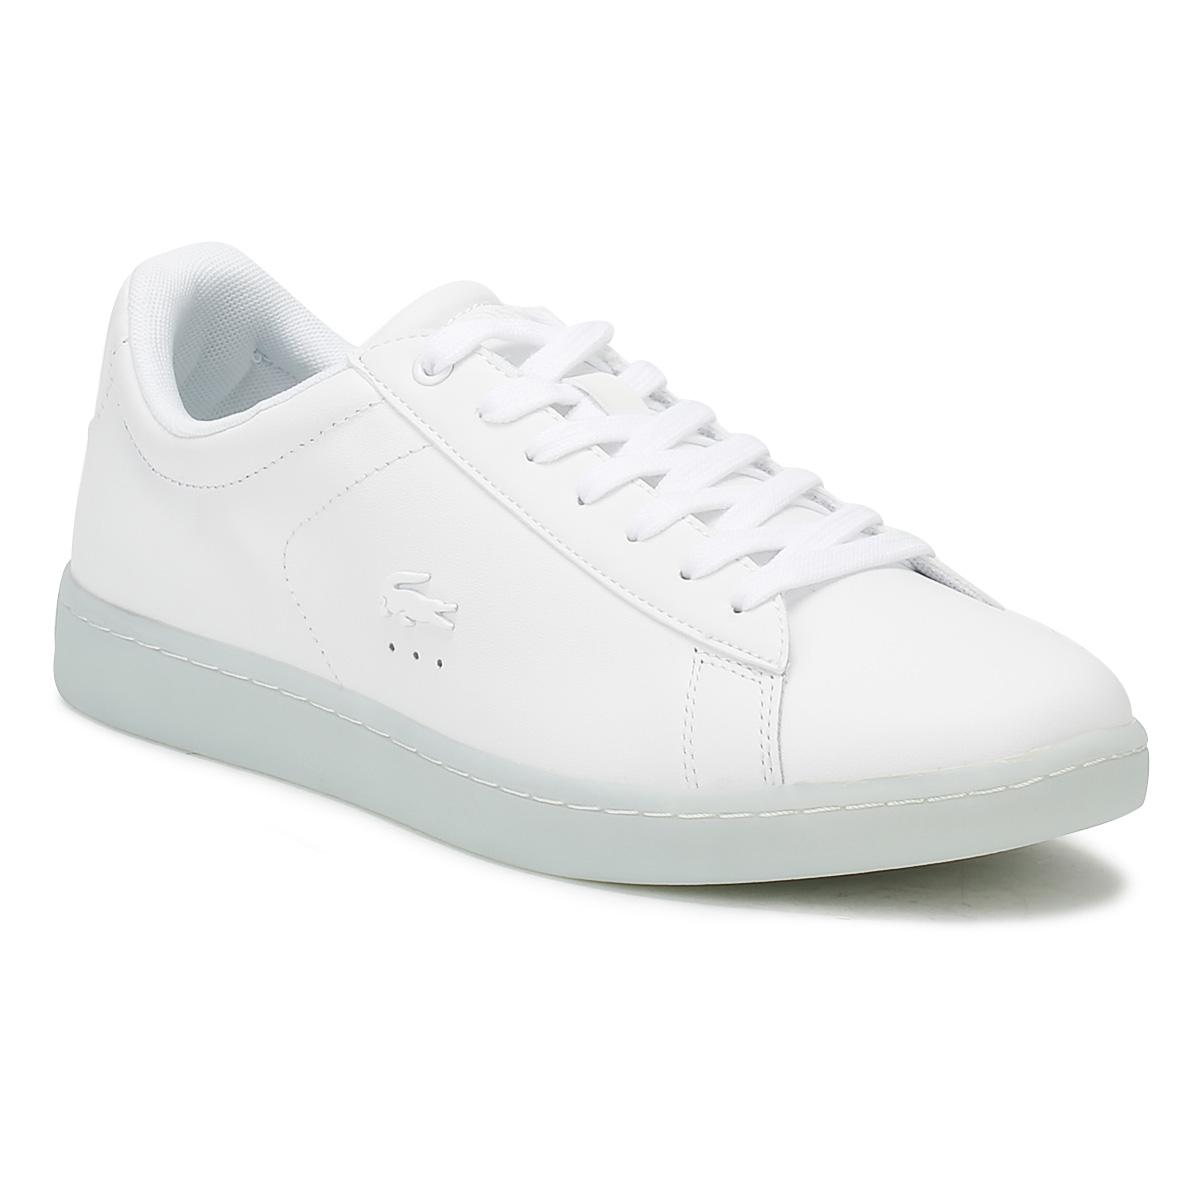 99cf79a9c Lyst - Lacoste Carnaby Evo 118 3 in White - Save 47%